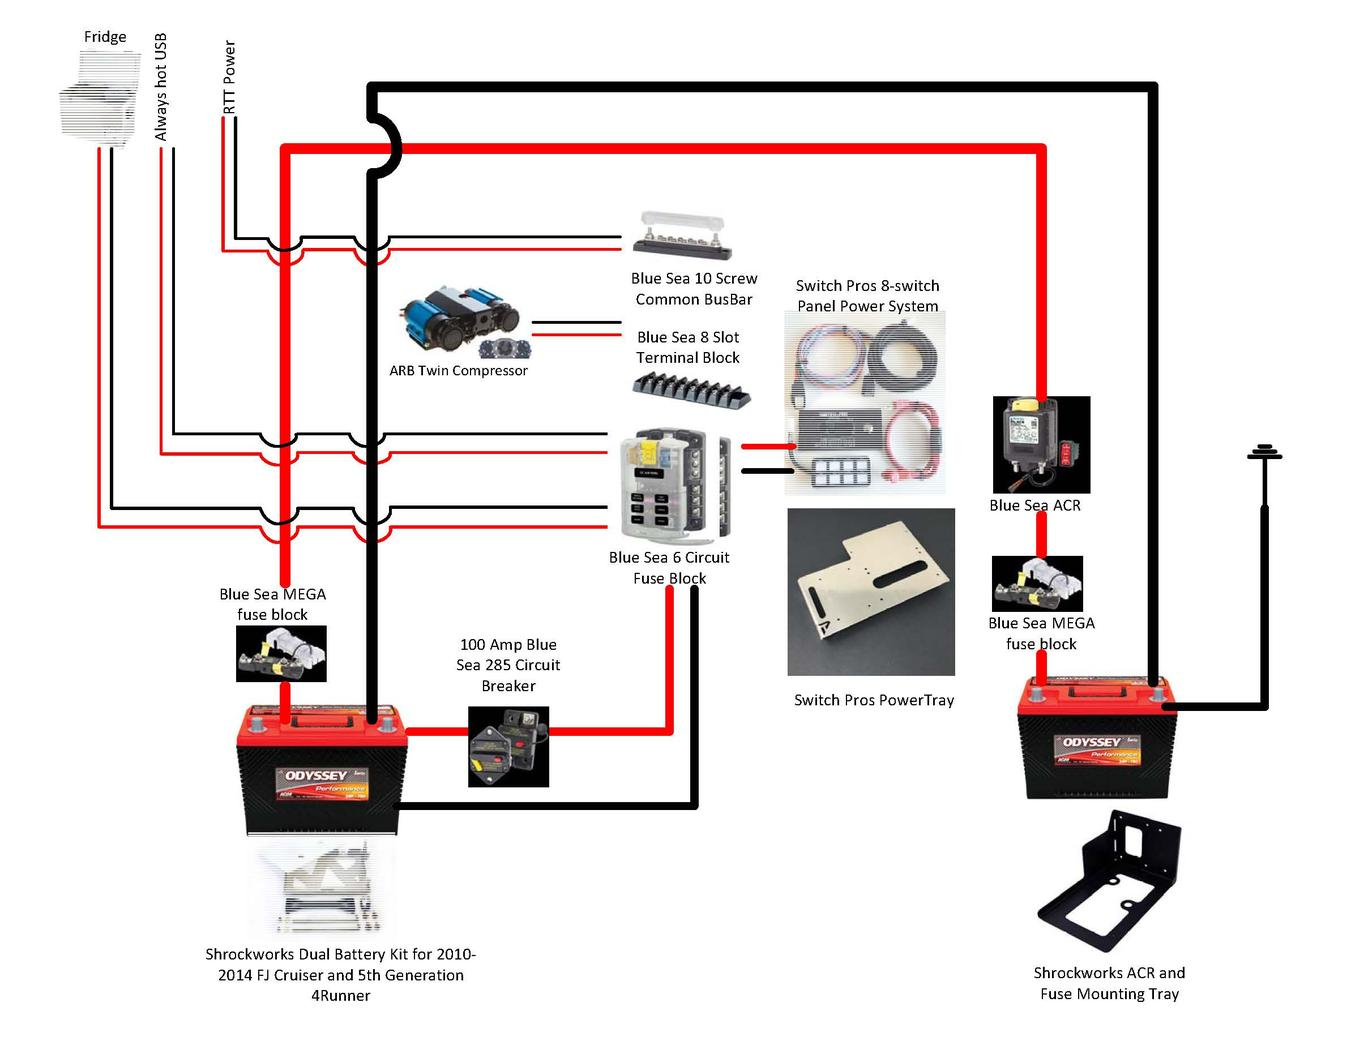 Usb To Battery Wiring Diagram on usb strip, usb computer diagram, usb socket diagram, circuit diagram, usb controller diagram, usb outlet adapter, usb charging diagram, usb outlets diagram, usb splitter diagram, usb pinout, usb connectors diagram, usb soldering diagram, usb schematic diagram, usb motherboard diagram, usb wire connections, usb block diagram, usb cable, usb wire schematic, usb switch, usb color diagram,